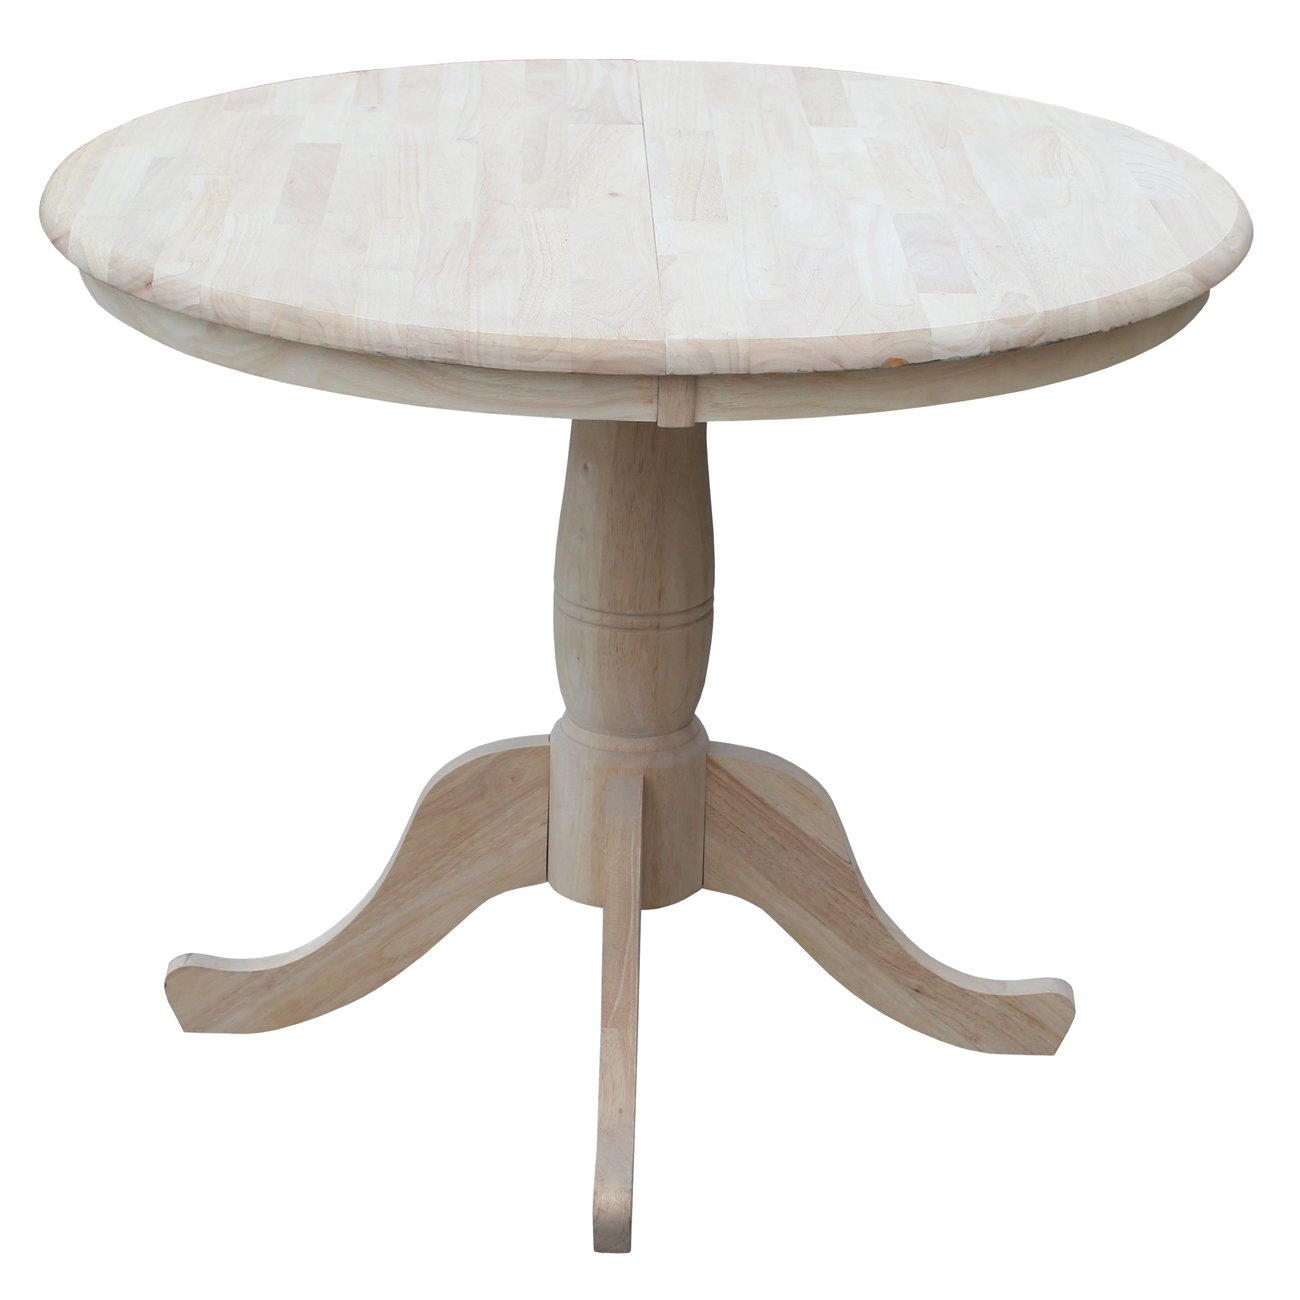 Cute Lark Manoru0026trade; Overbay Round Pedestal 30 Extendable Dining Table oval extending dining table